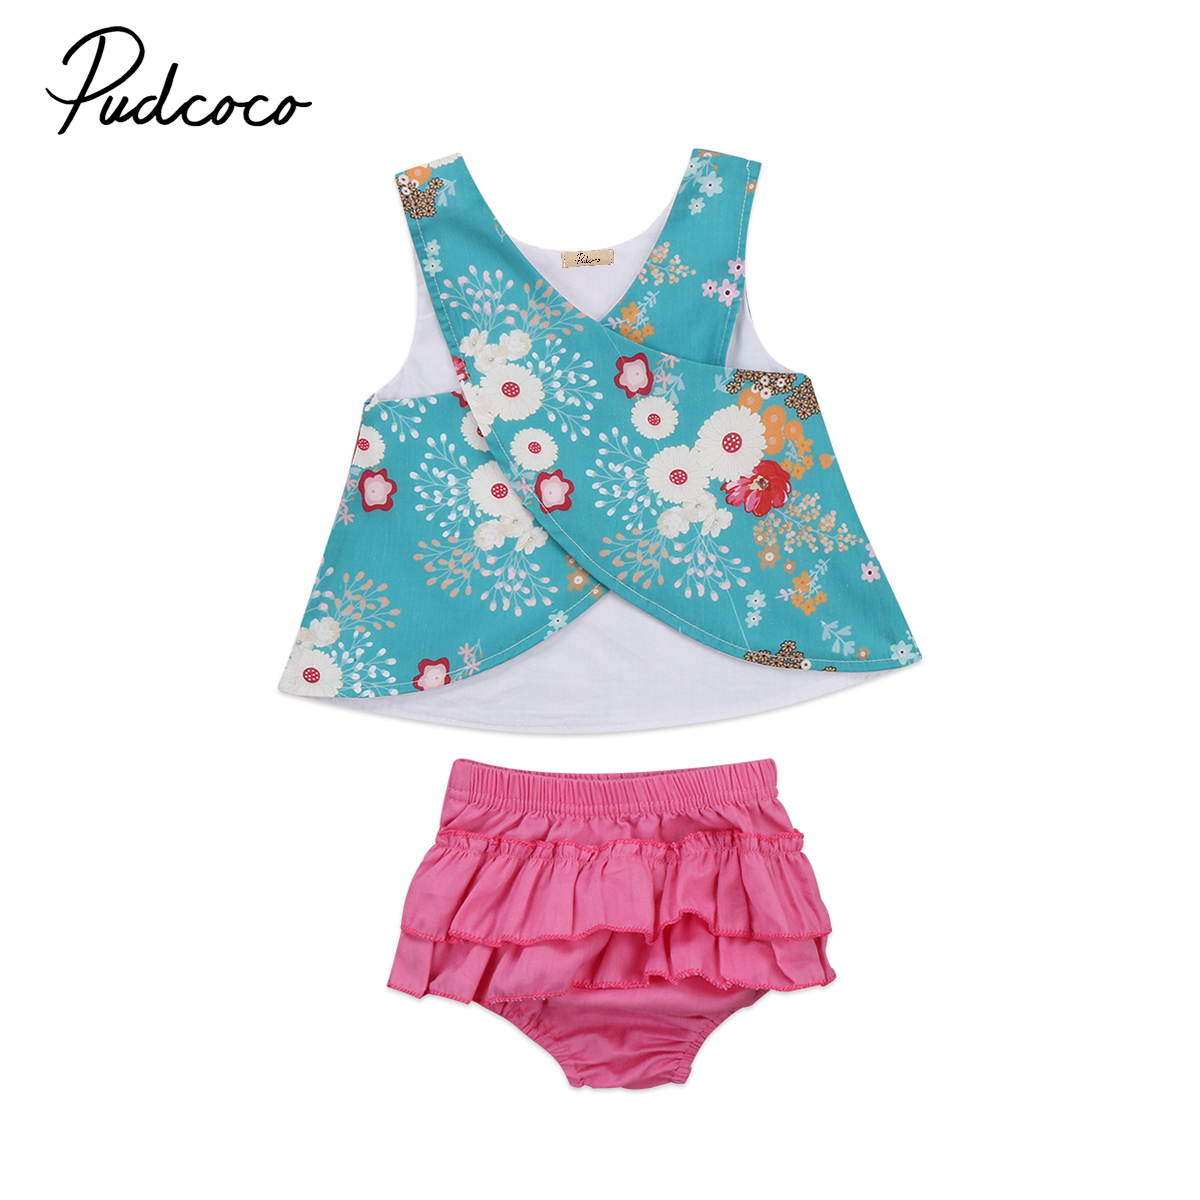 Flower Baby Girls Outfit Clothes Summer Red Green Yellow Floral Vest Tops T-shirt+Tutu Bloom Shorts 2pcs Children Clothing Sets flower sleeveless vest t shirt tops vest shorts pants outfit girl clothes set 2pcs baby children girls kids clothing bow knot